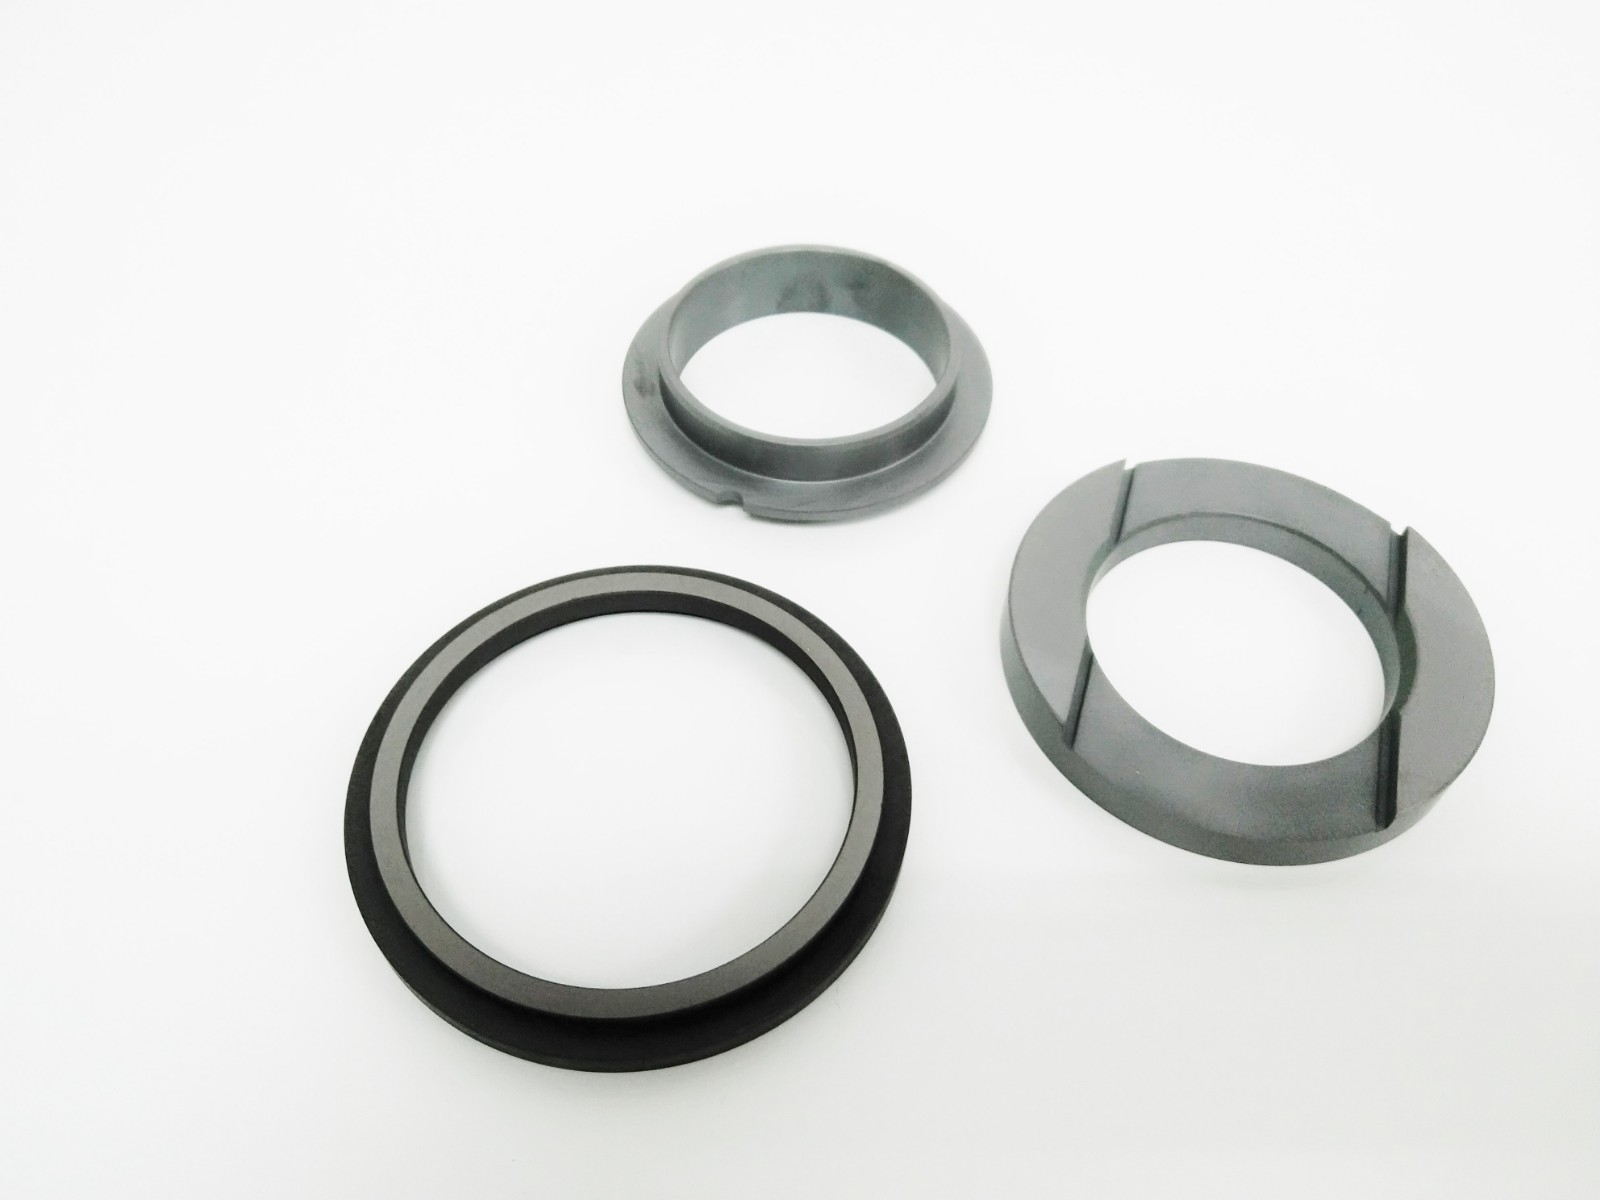 Lepu solid mesh fristam pump seals buy now for high-pressure applications-1